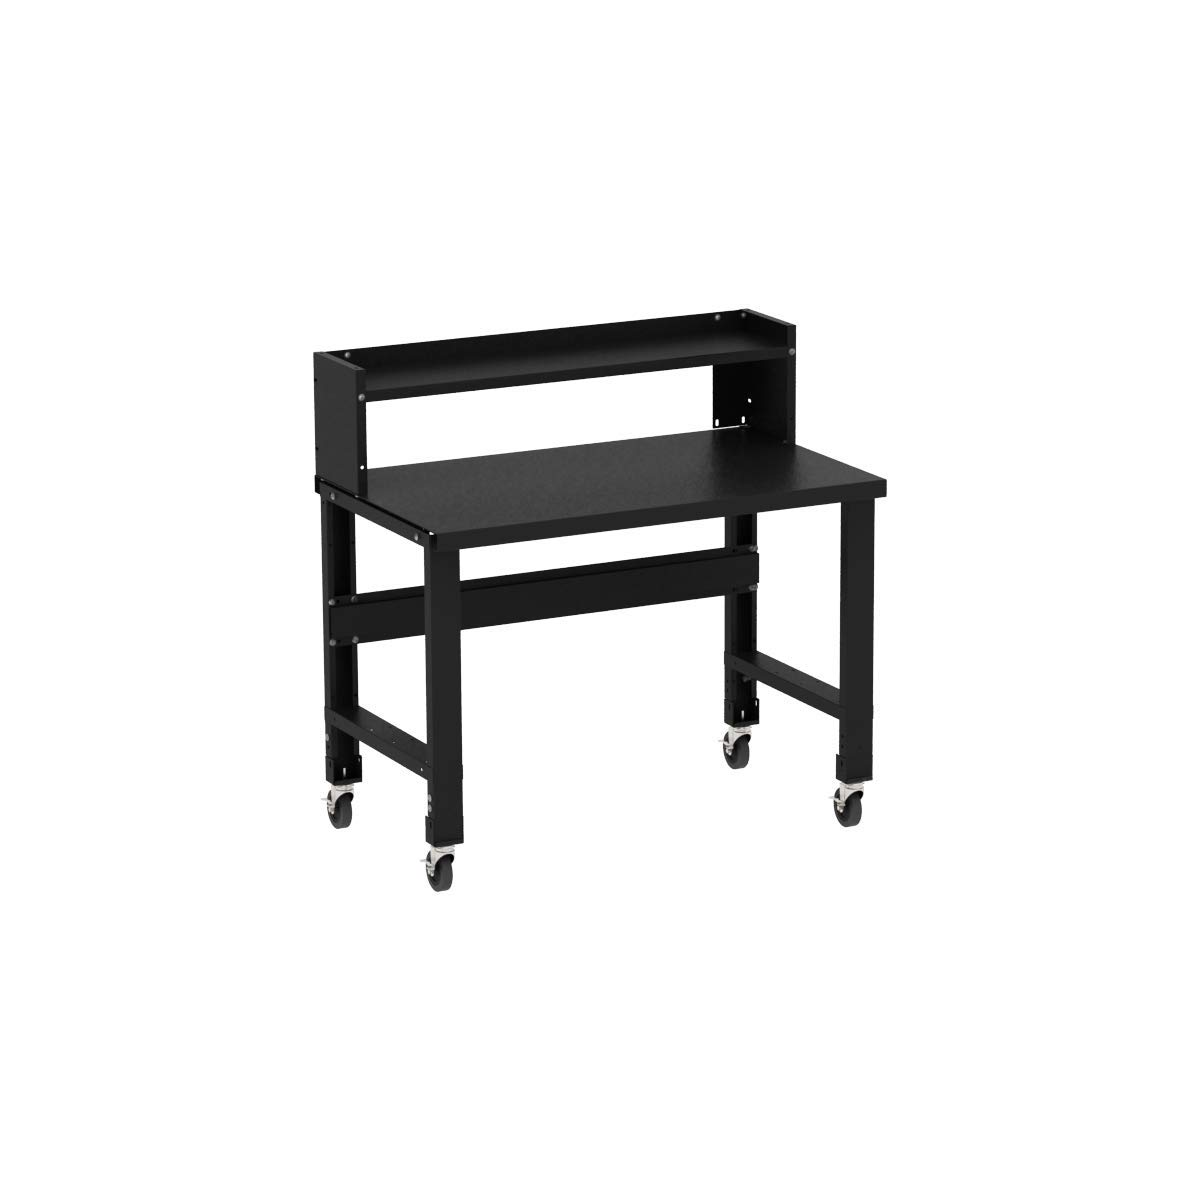 Borroughs Adjustable Height Black Painted Top Workbench with Ledge Shelf, 28 in x 48 in